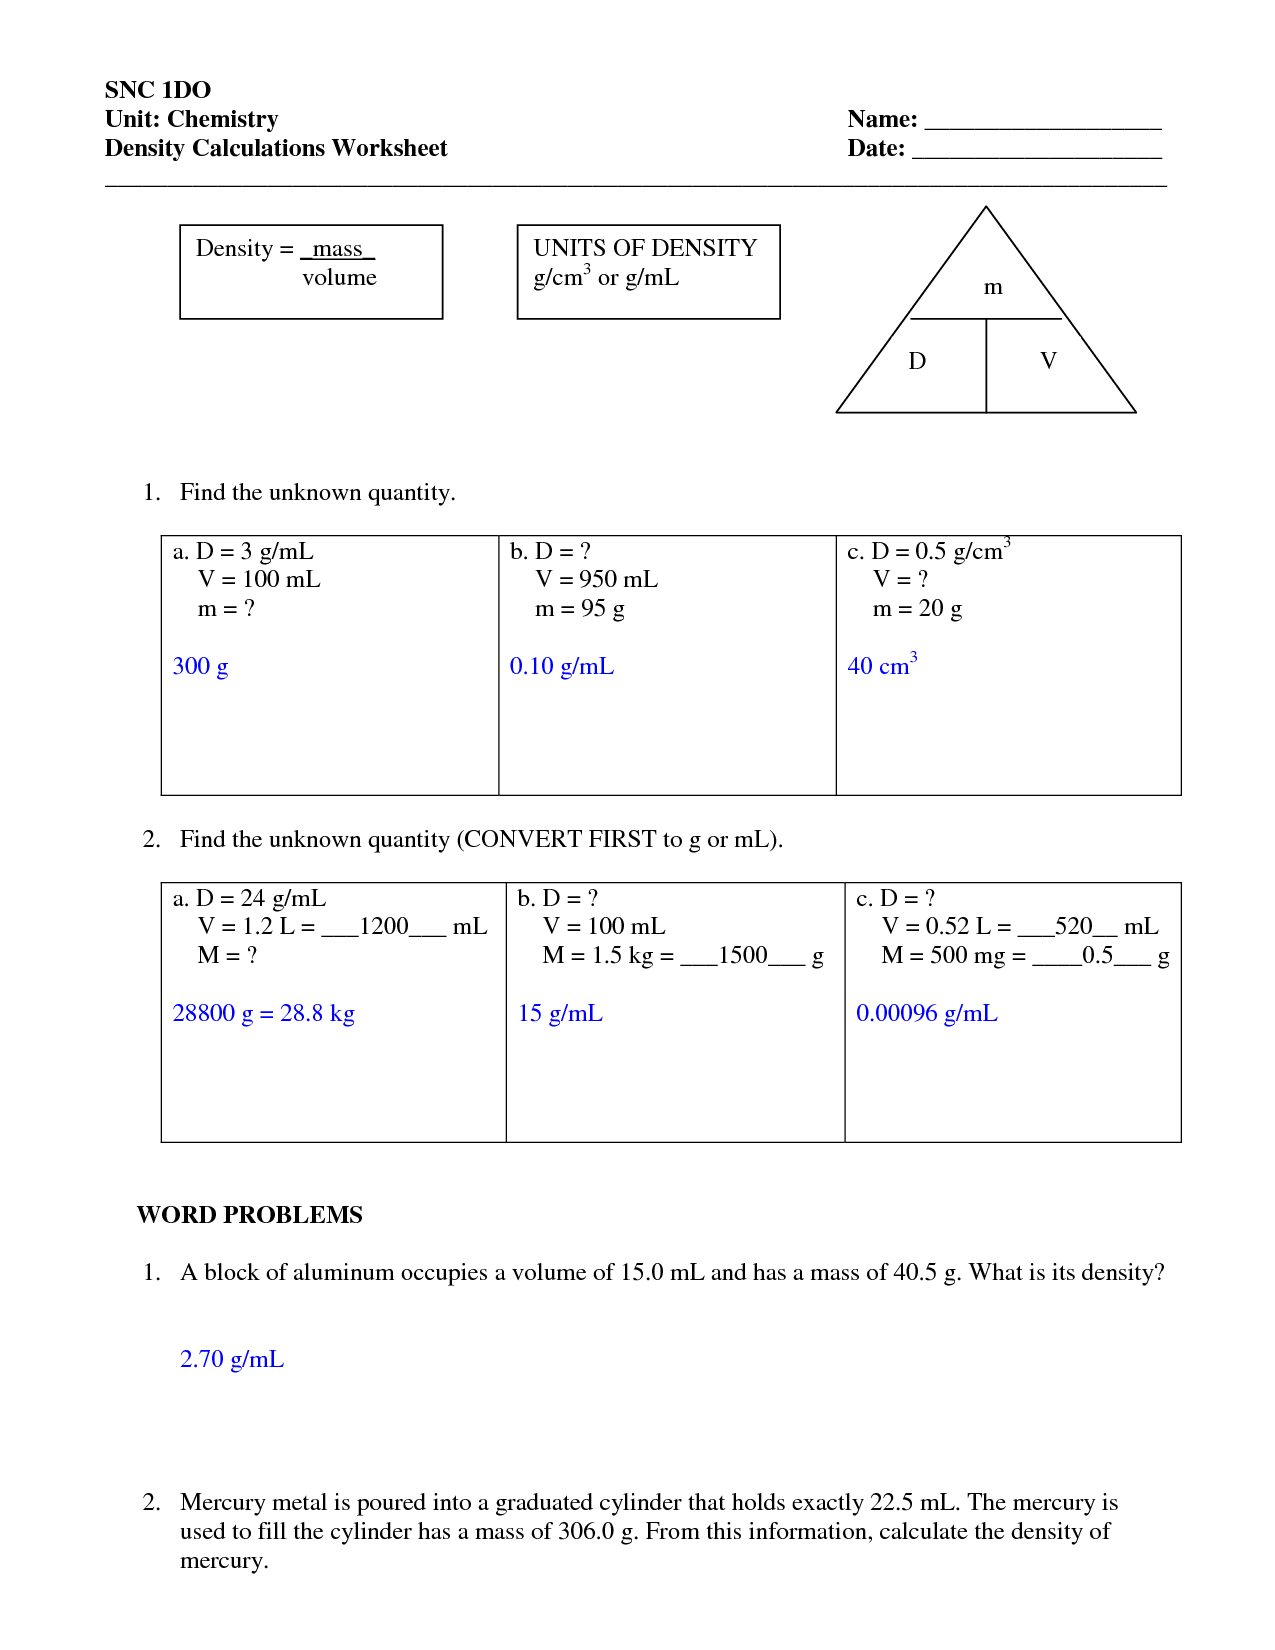 density worksheets with answers – Density Worksheet Answers